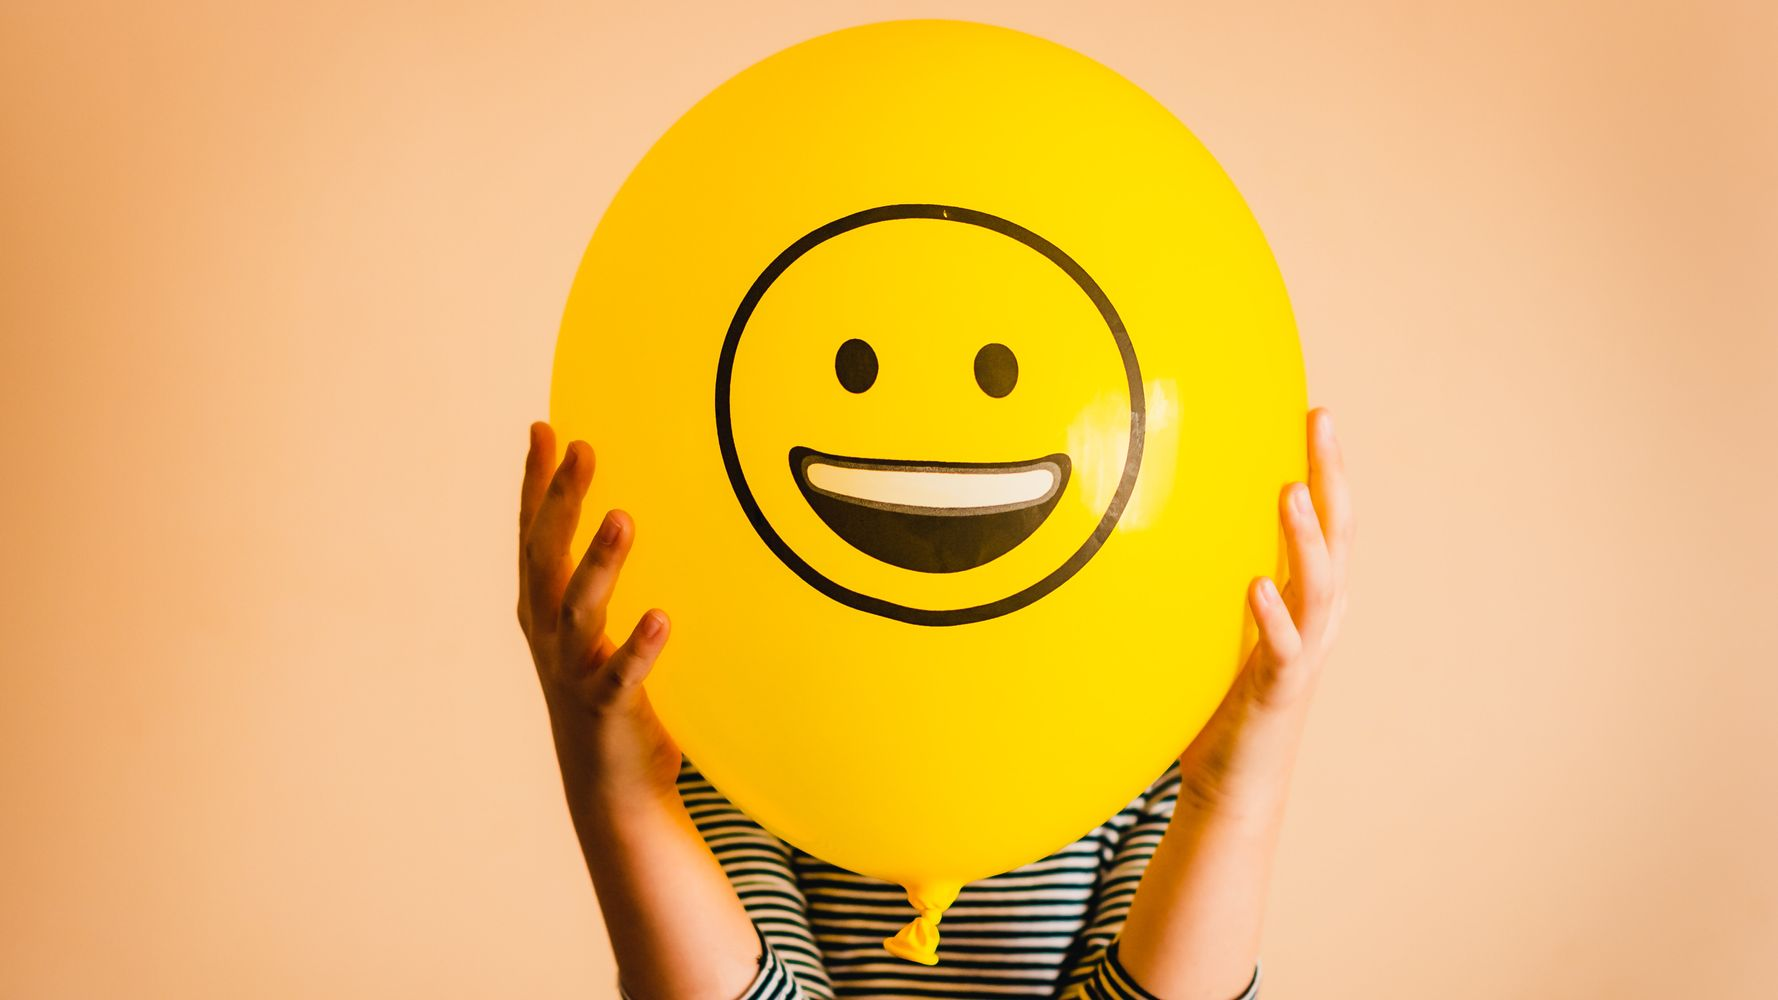 The 4 Steps That Will Increase Happiness, According To A New Study